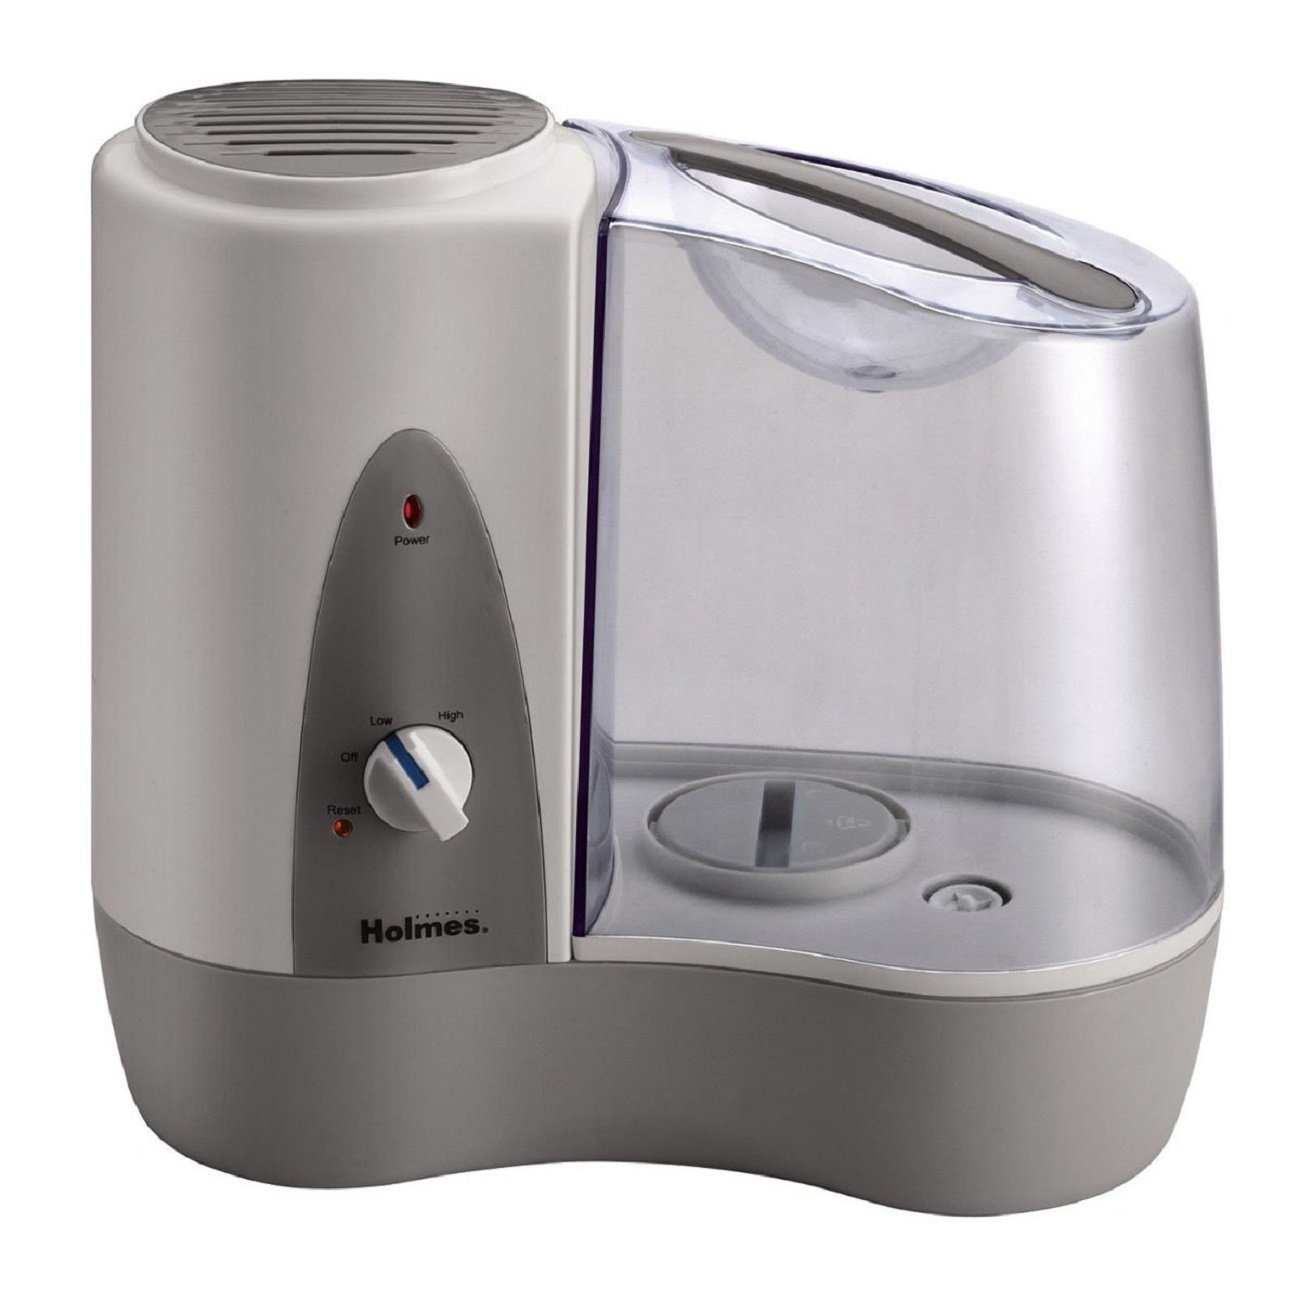 Holmes HWM6008 Warm Mist Humidifier Review